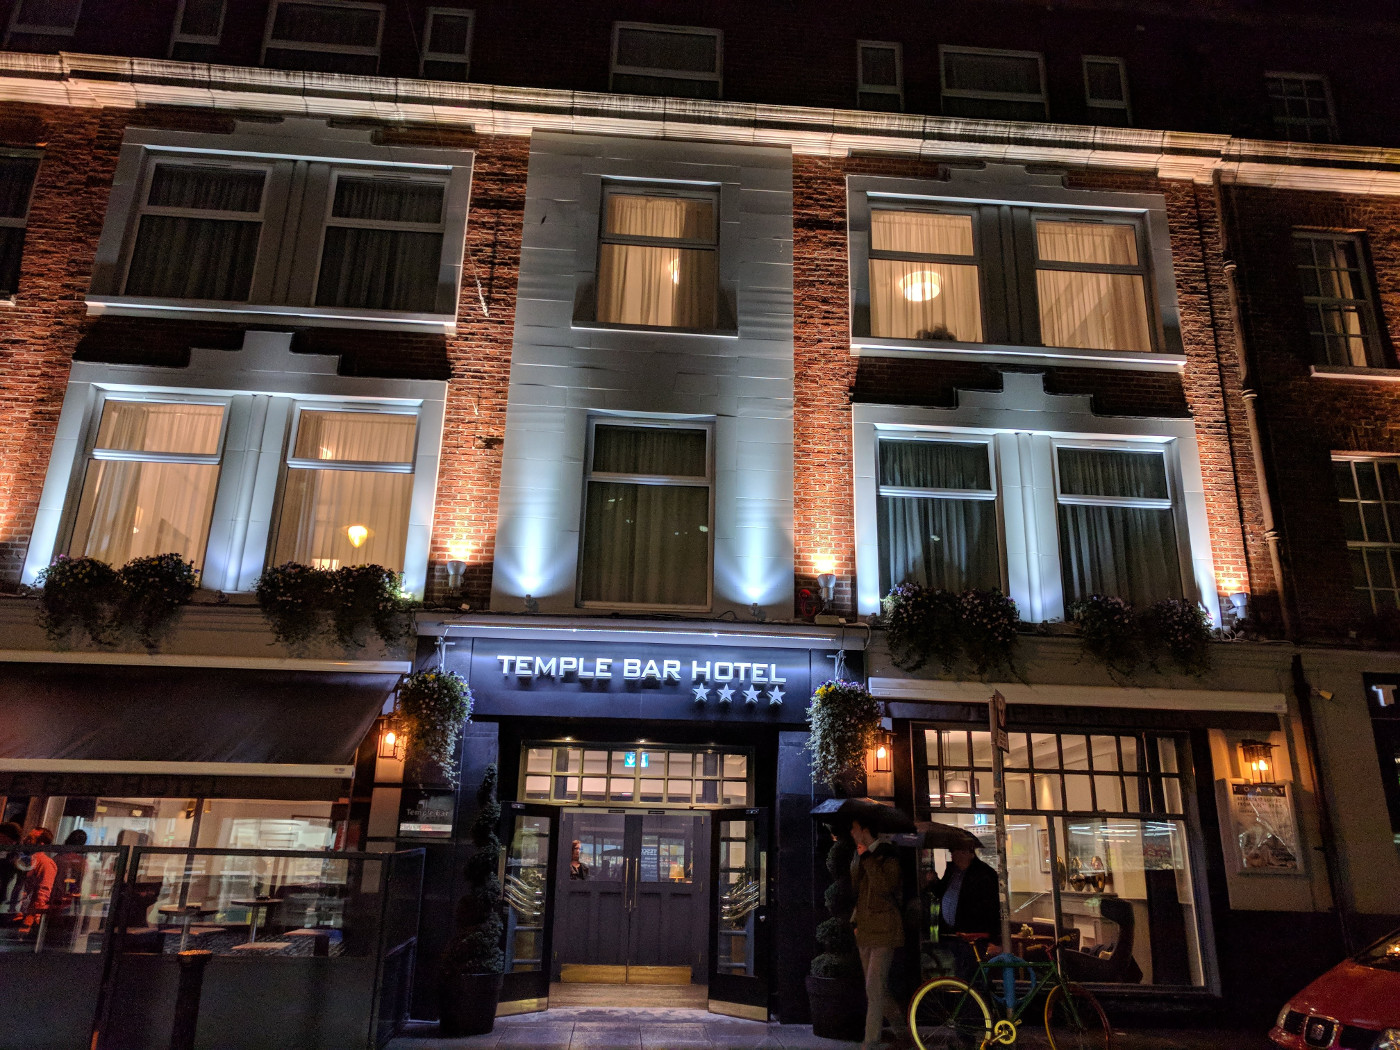 The Temple Bar Hotel